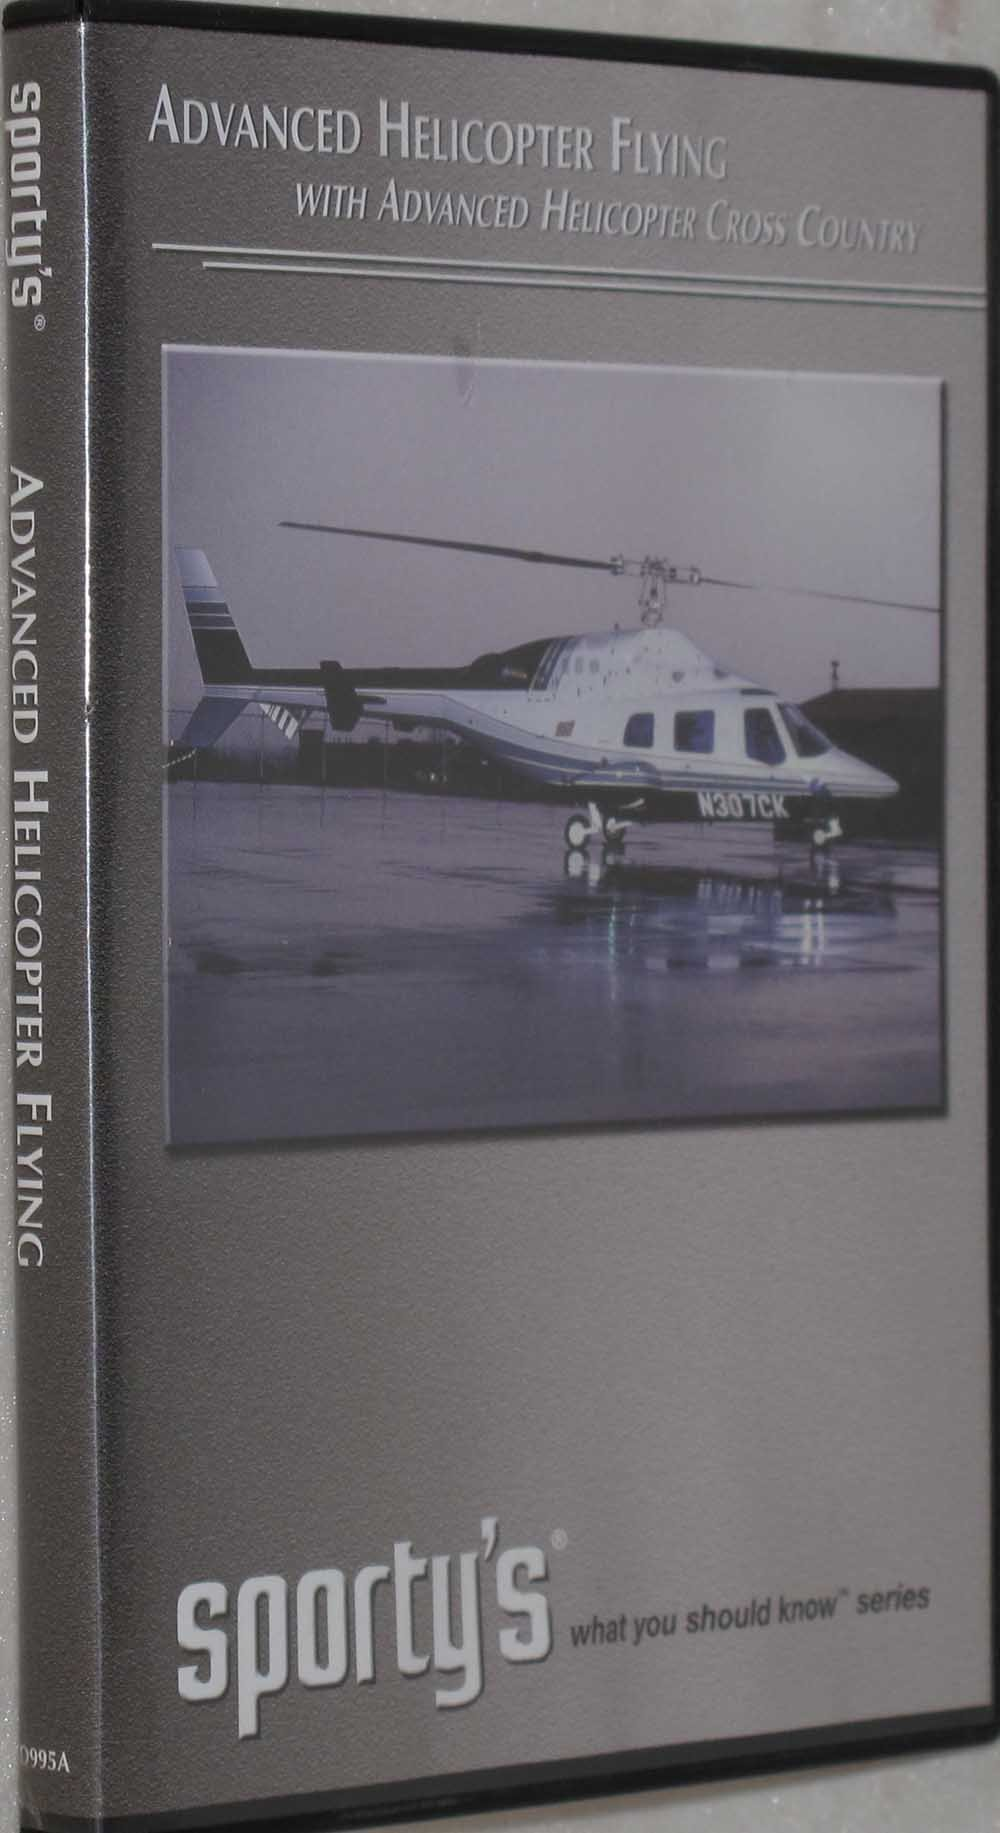 advanced-helicopter-flying-with-advanced-helicopter-cross-country-what-you-should-know-series